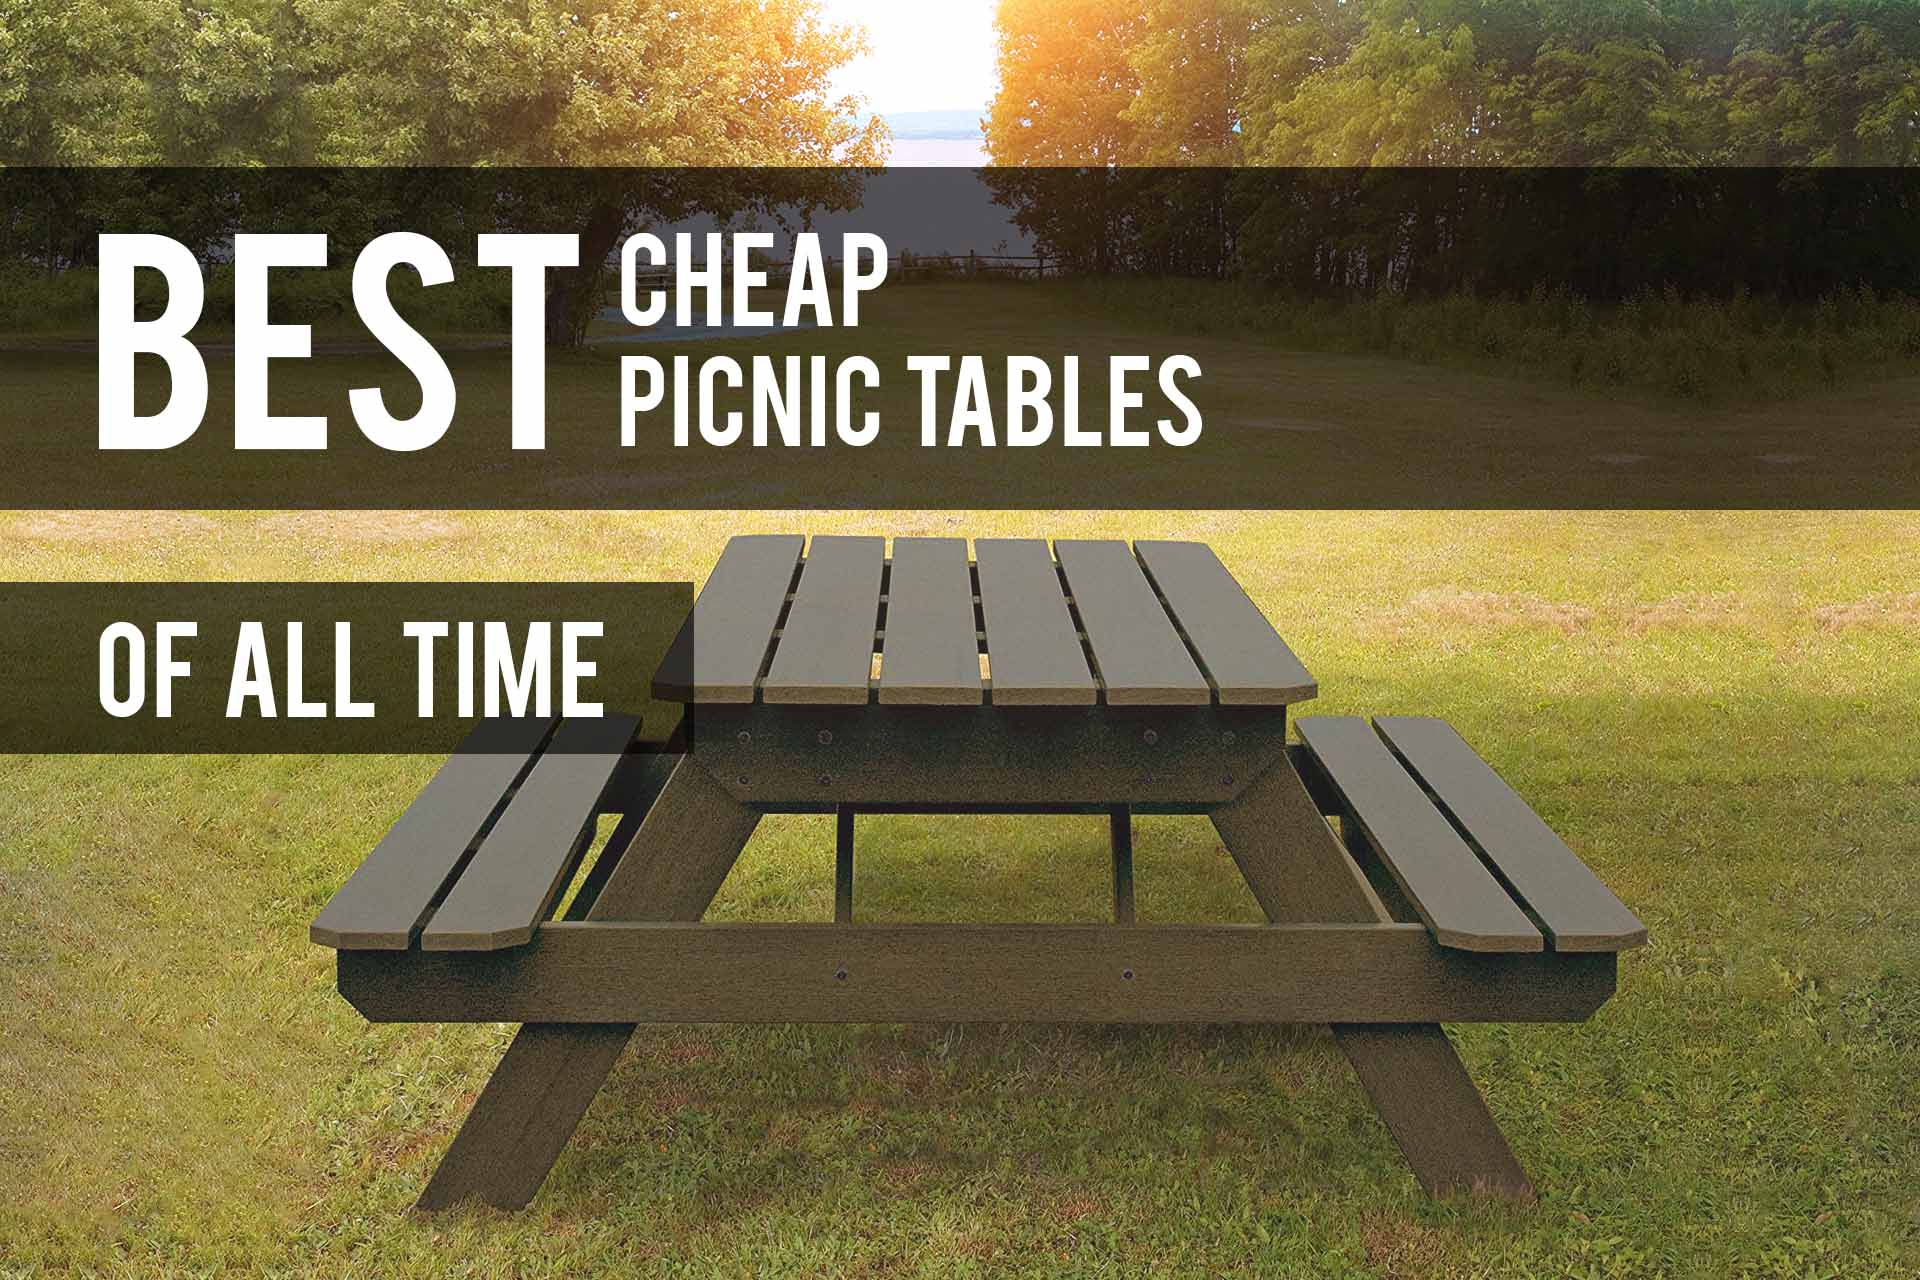 Groovy Best Cheap Picnic Tables 2019 Reviews The Patio Pro Customarchery Wood Chair Design Ideas Customarcherynet